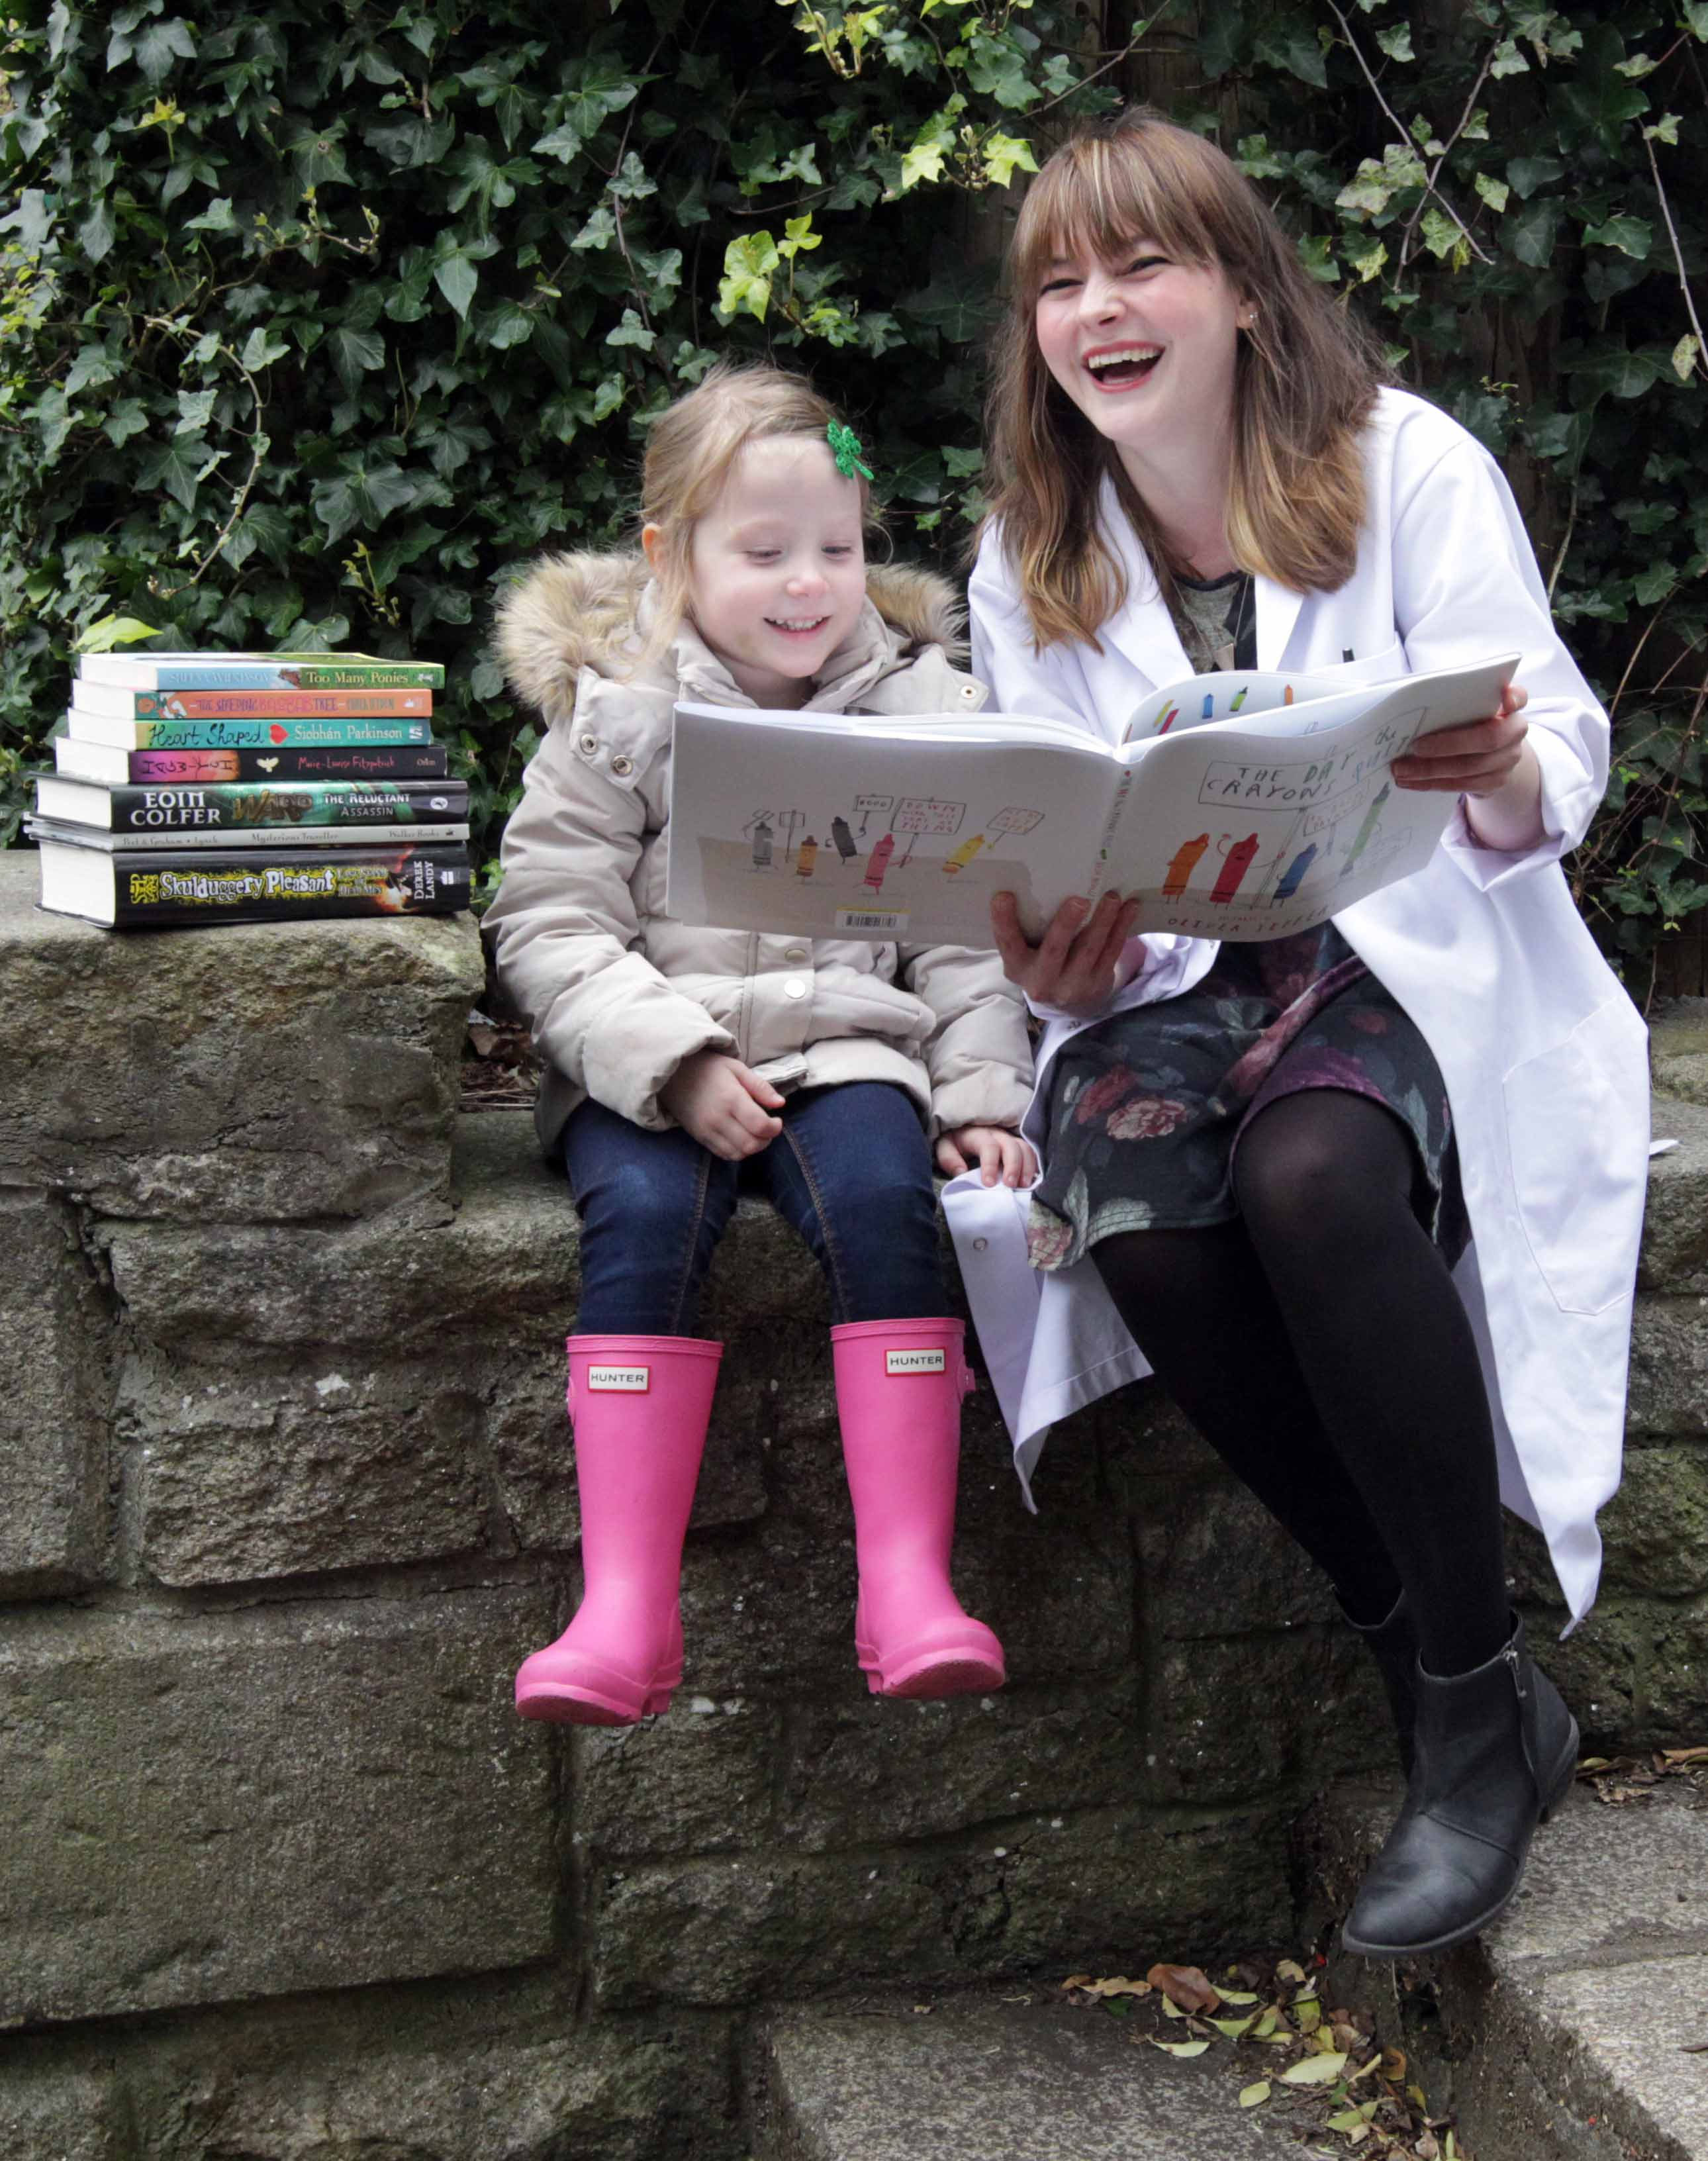 NO REPRO FEE 18/3/2014 Children's Books Ireland Book of the Year Award. Three-year-old Nahla Burke and Children's Books Ireland Book Doctor Kim Harte celebrate the eight books shortlisted for the Children's Books Ireland Book of the Year Award. The eight shortlisted books are 'The Sleeping Baobab Tree' by Paula Leyden, 'Warp The Reluctant Assassin' by Eoin Colfer, 'Heart Shaped' by Siobhan Parkinson, 'Hagwitch' by Marie-Louise Fitzpatrick, 'Too Many Ponies' by Sheena Wilkinson, 'Skulduggery Pleasant Last Stand of Dead Men' by Derek Landy, 'Mysterious Traveller' illustrated by P.J. Lynch, 'The Day the Crayons Quit' illustrated by Oliver Jeffers. Photo: Mark Stedman/Photocall Ireland